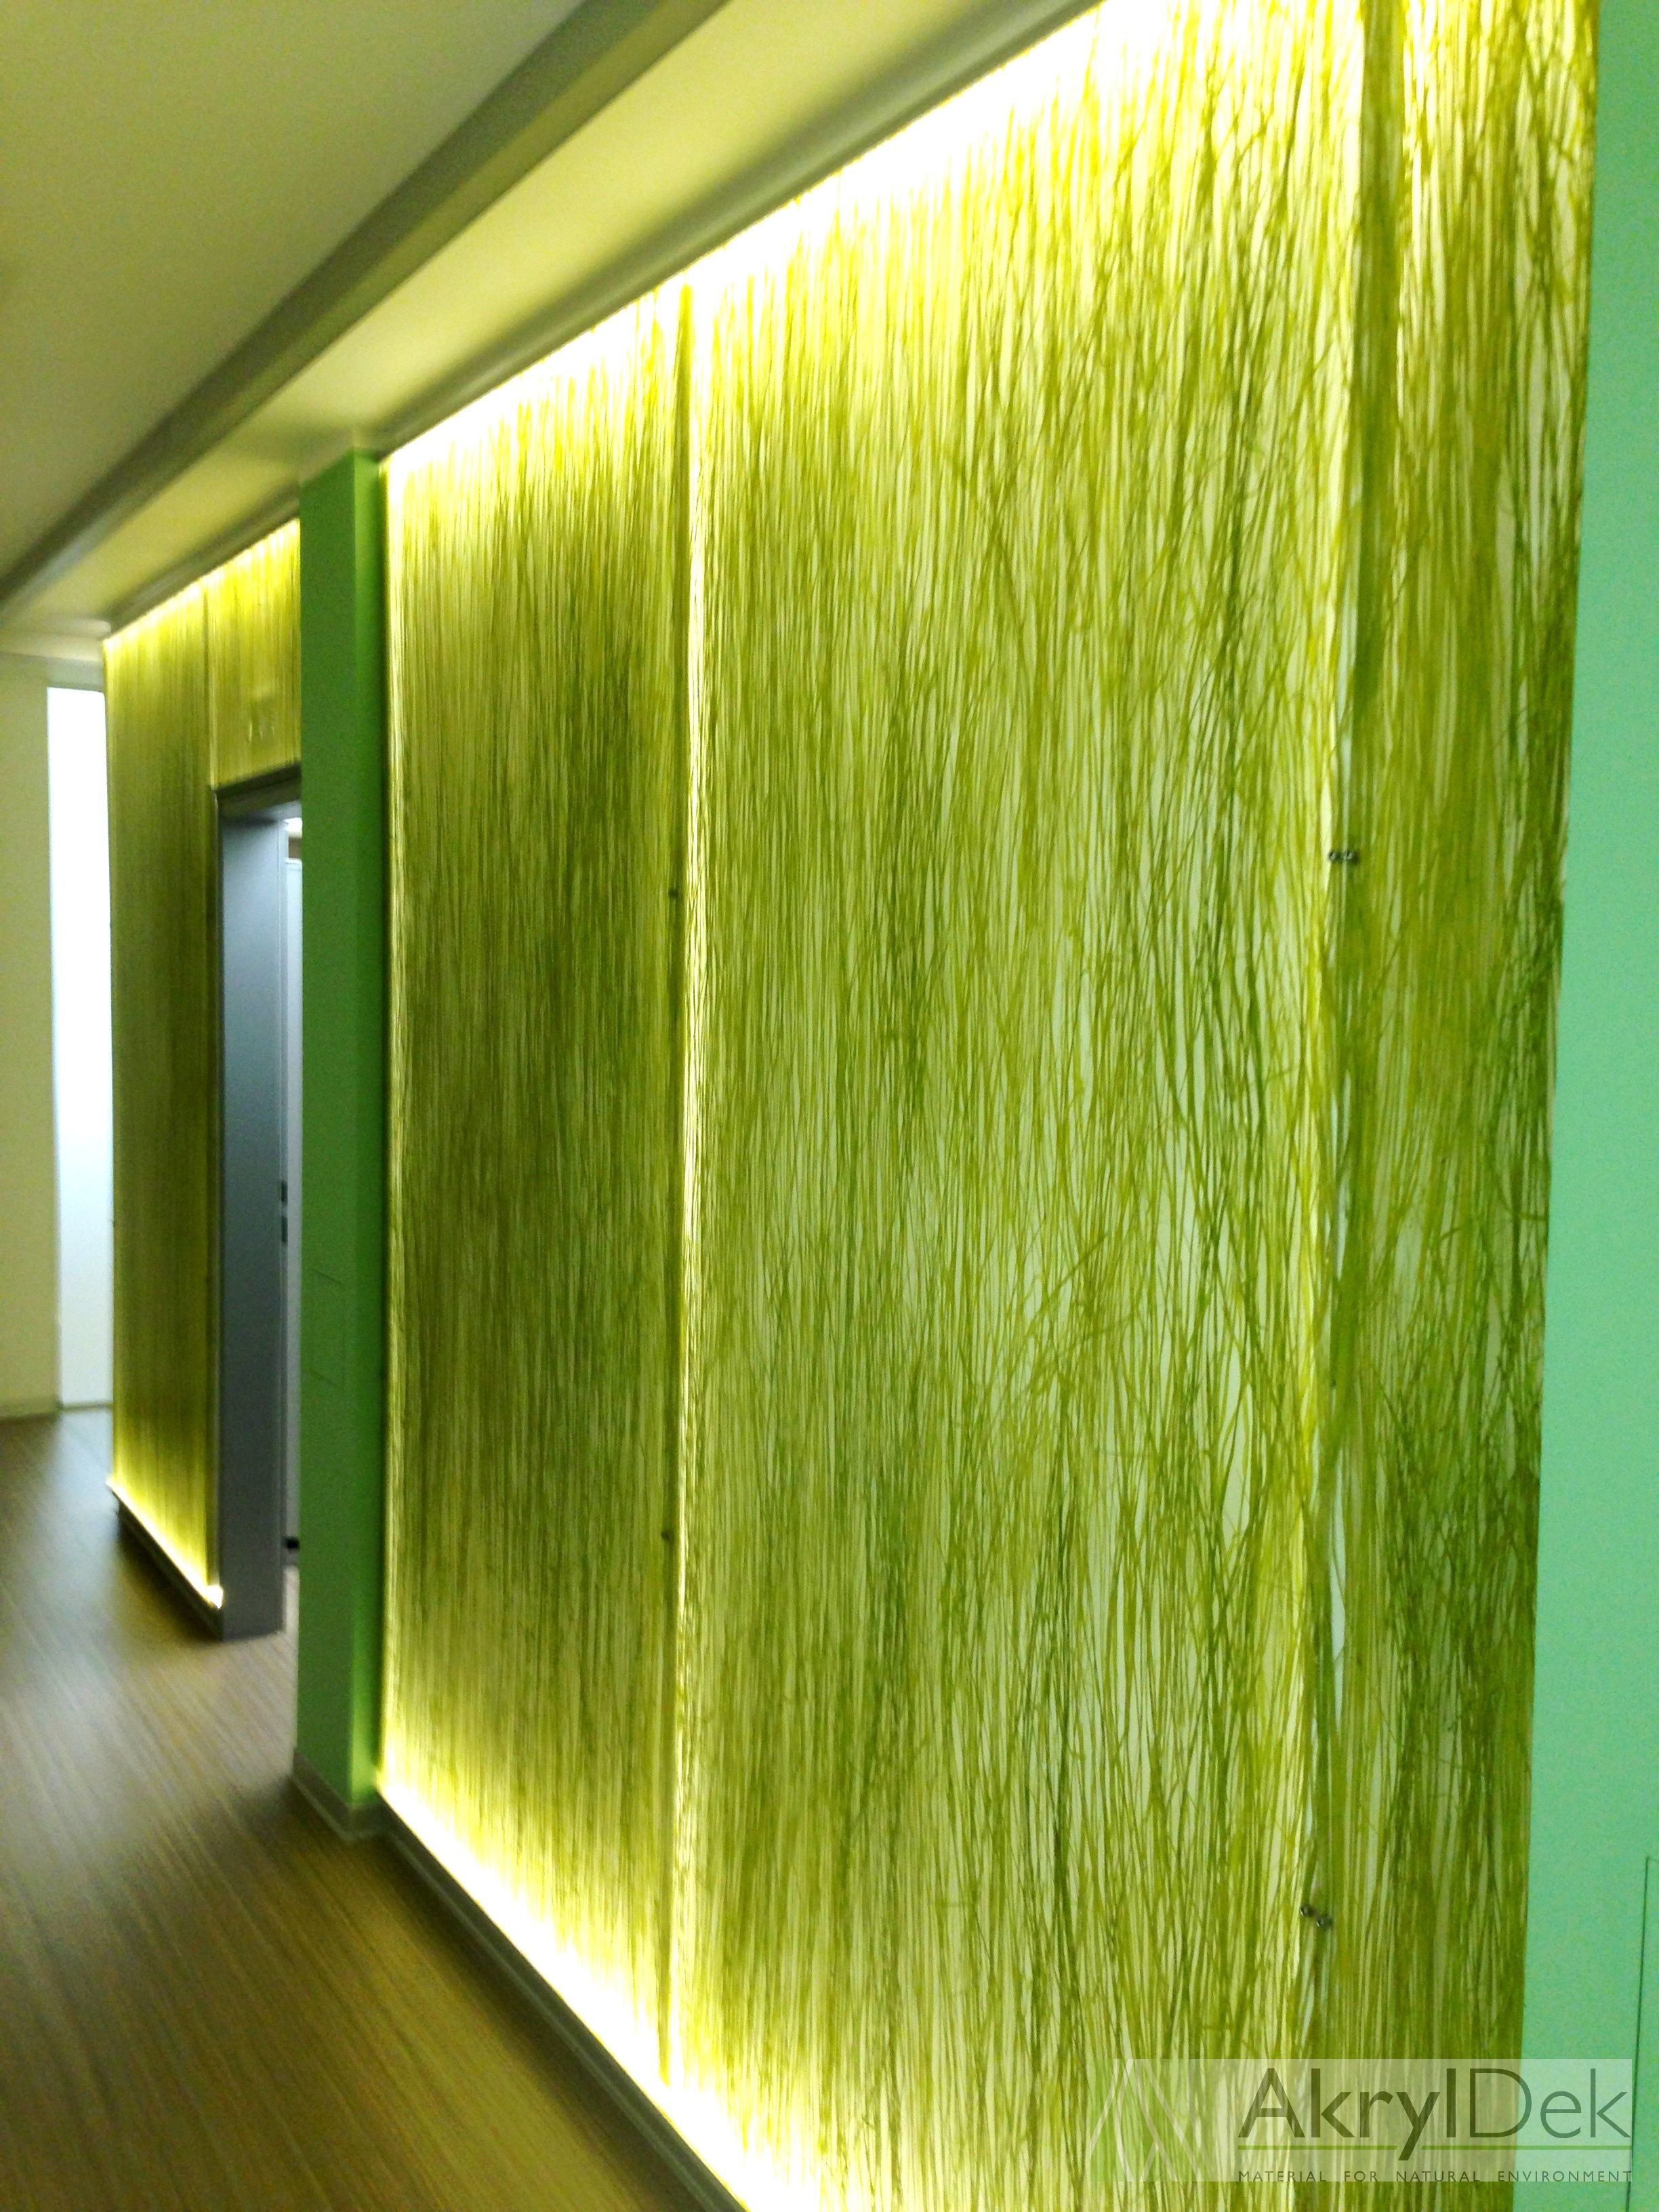 Wall Panel Decoration With Organic Grass #Wall #Panels #Decoration #Design